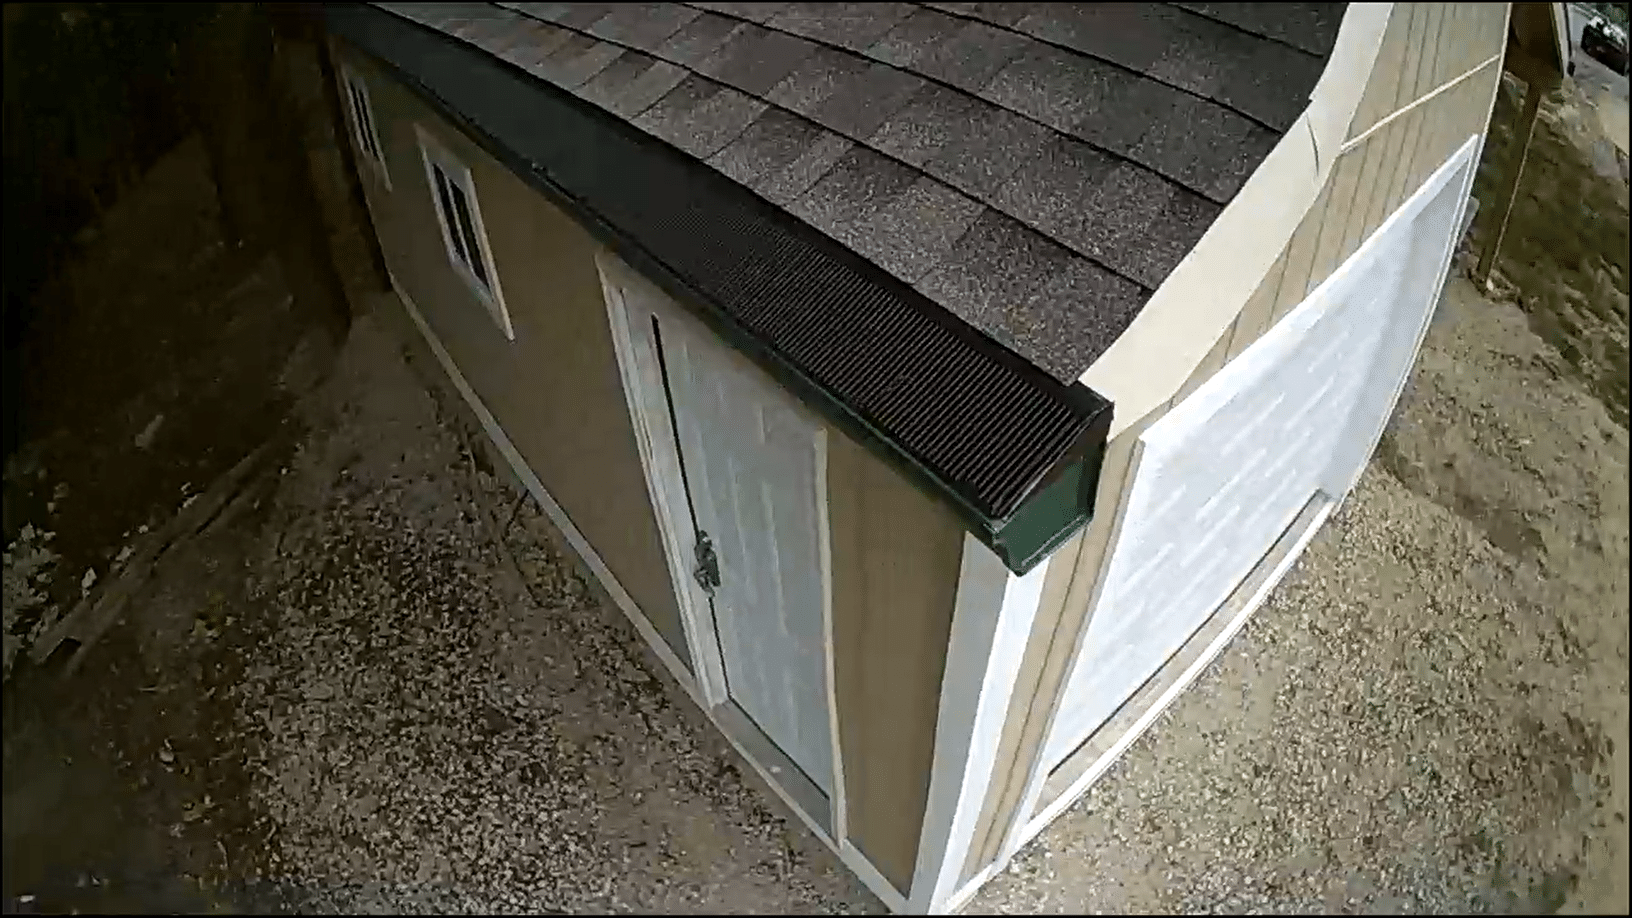 Small Shed 4 (Drone)